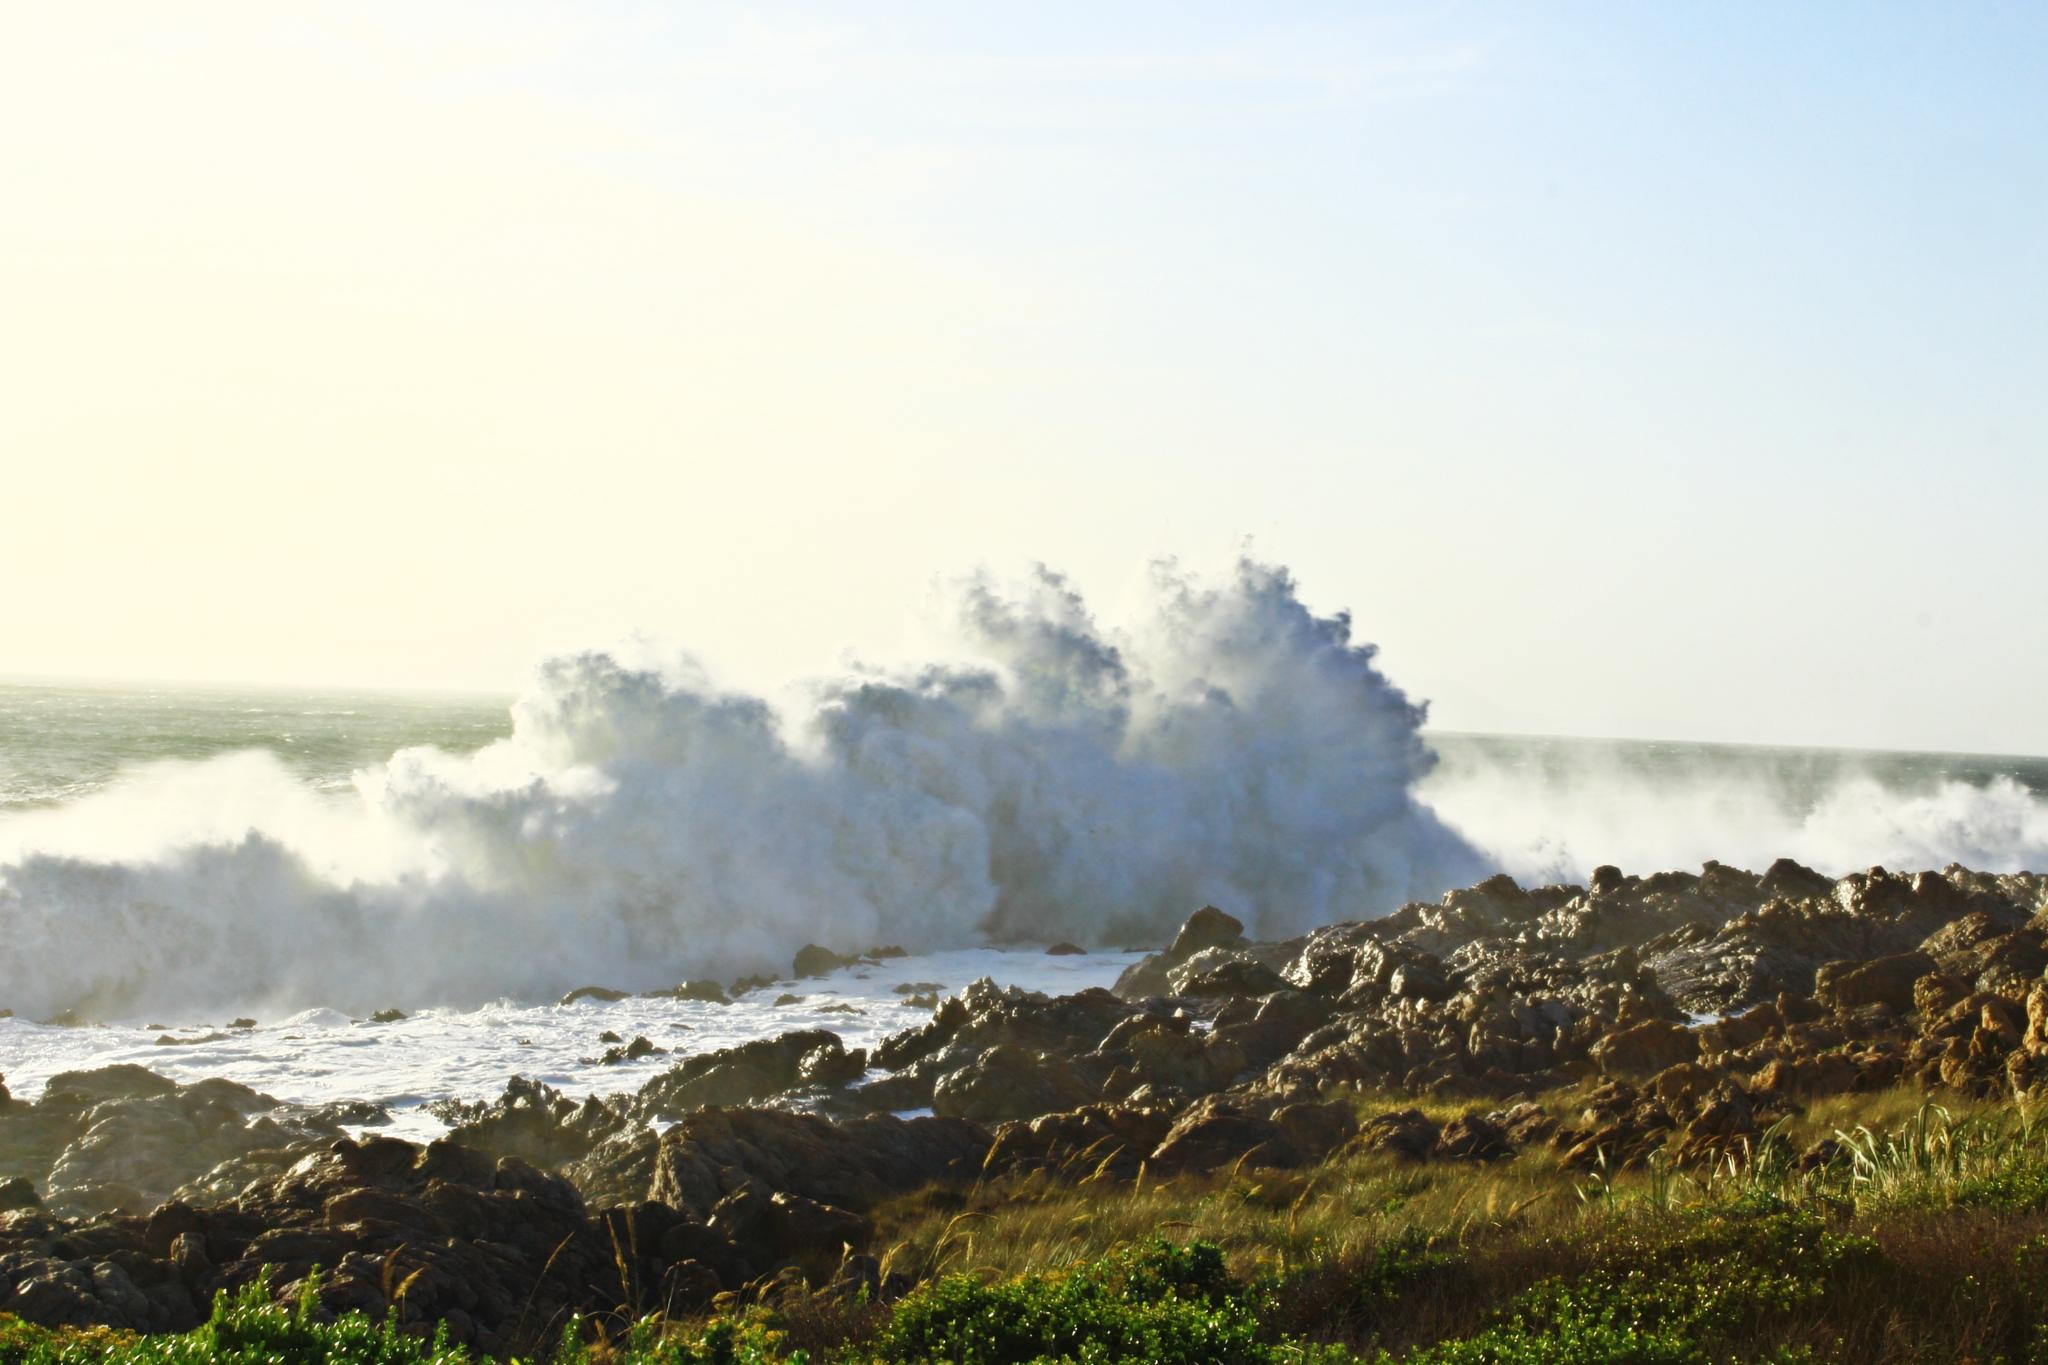 The Big WAve by Judithstopforth